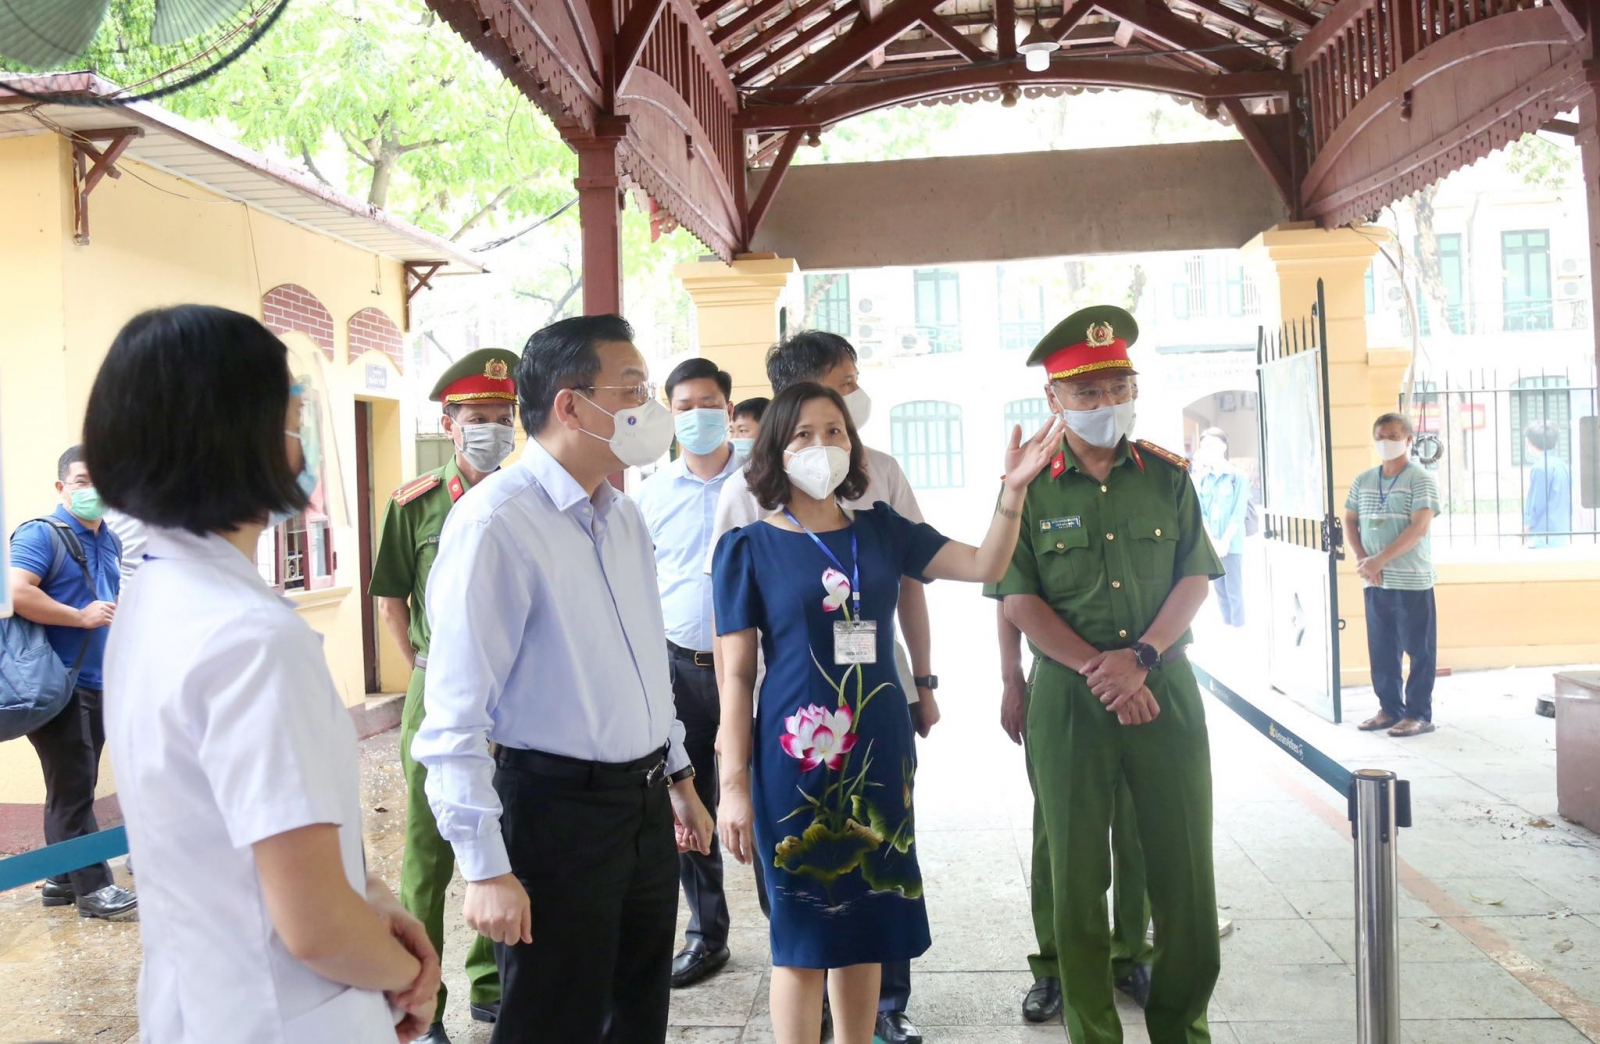 Grade 10 exam in Hanoi: 38 candidates and 17 exam officials are absent because of the COVID-19 epidemic 3